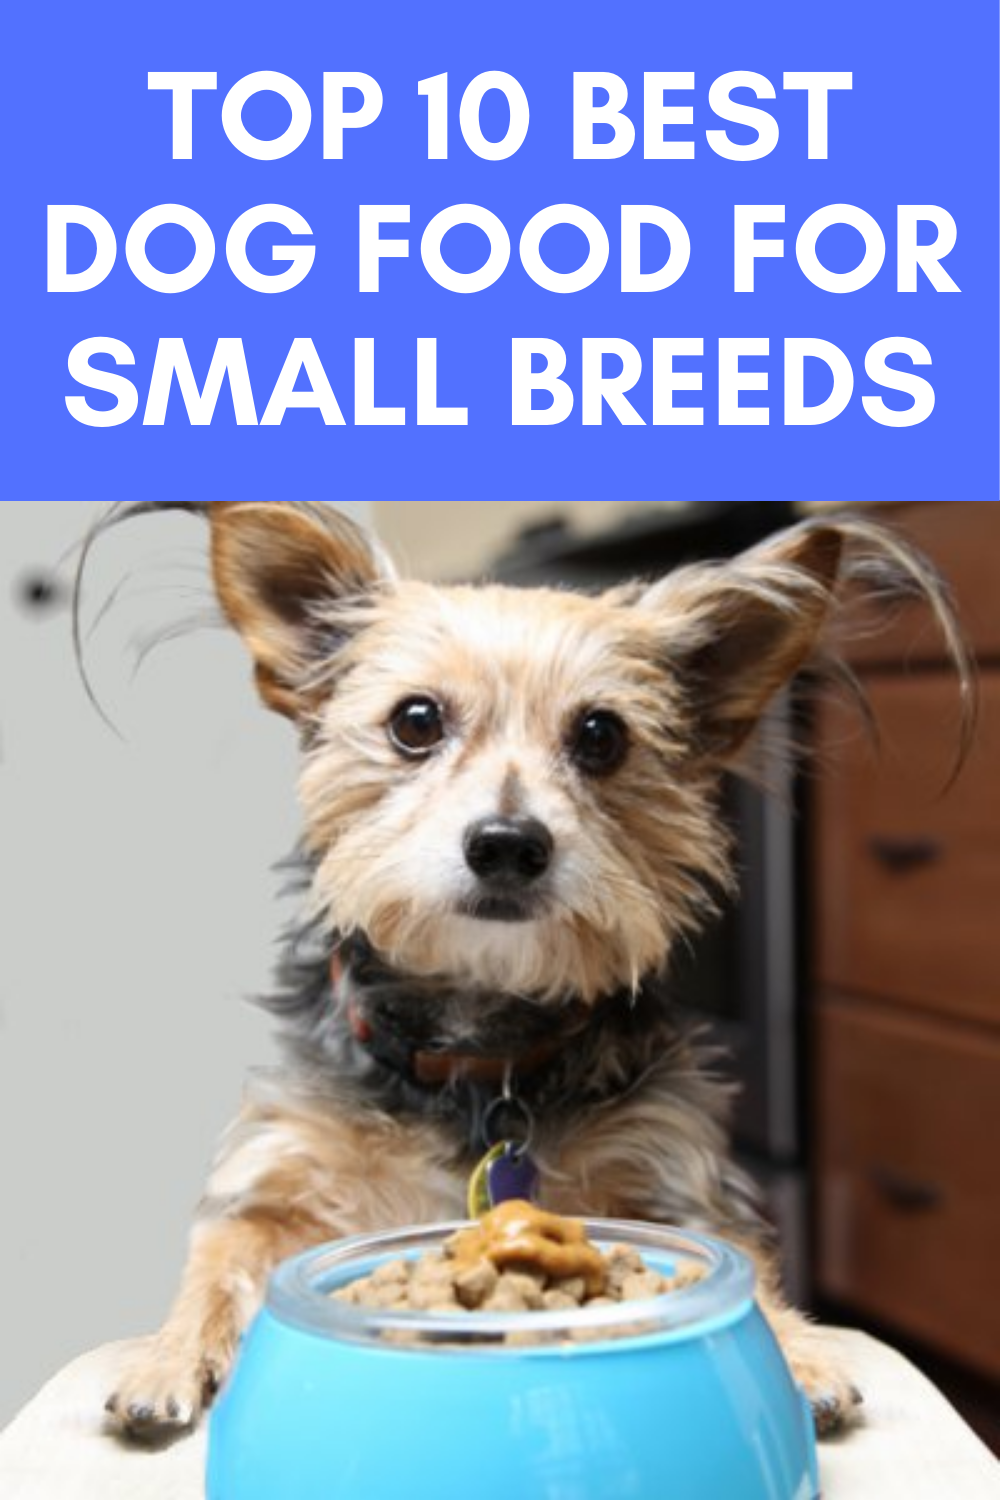 Top 10 Best Dog Food For Small Breeds In 2020 Small Breed Dog Food Best Dog Food Dog Food Recipes